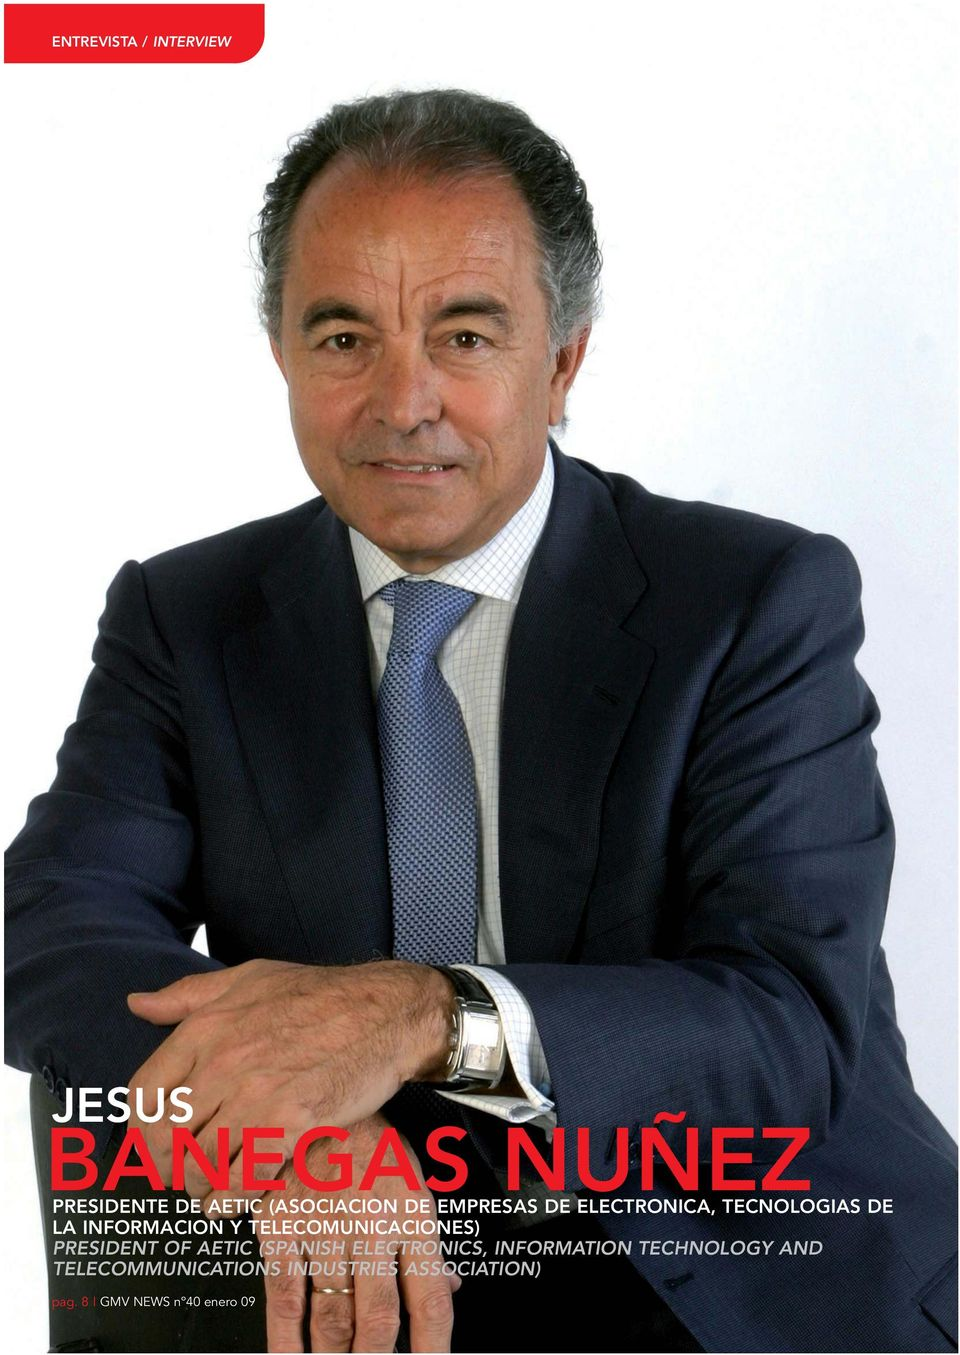 TELECOMUNICACIONES) PRESIDENT OF AETIC (SPANISH ELECTRONICS, INFORMATION